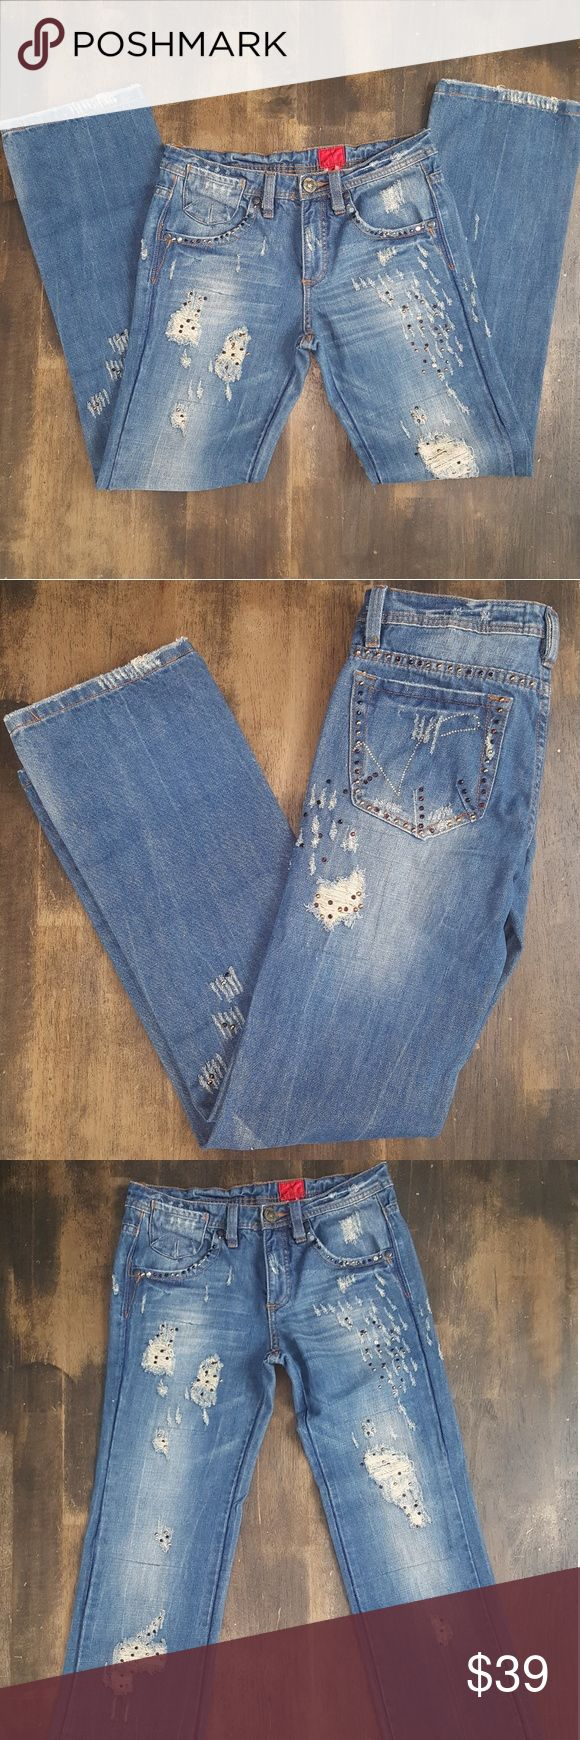 V Cristina Jeans Size 2 V Cristina Jeans, these jeans were barely worn, if at all!  Size 2, 100% cotton  Factory Distressed, missing 2 embellishment on front pockets v cristina Jeans